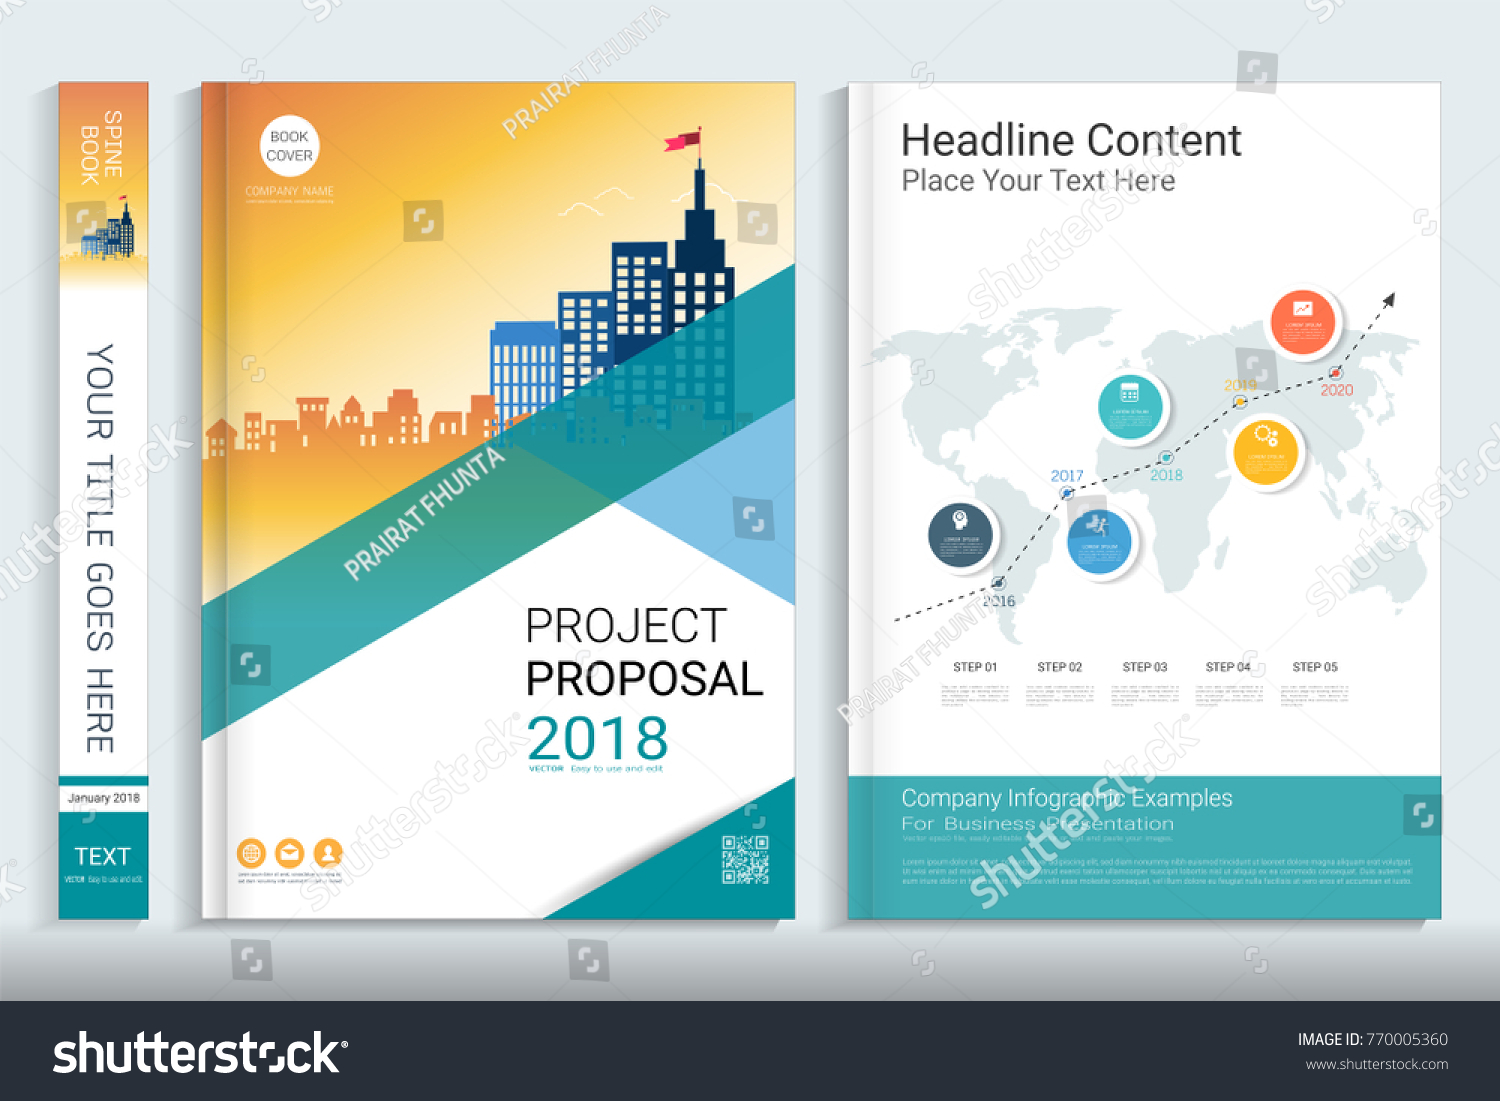 business development proposal template ucla i love school song, Presentation templates